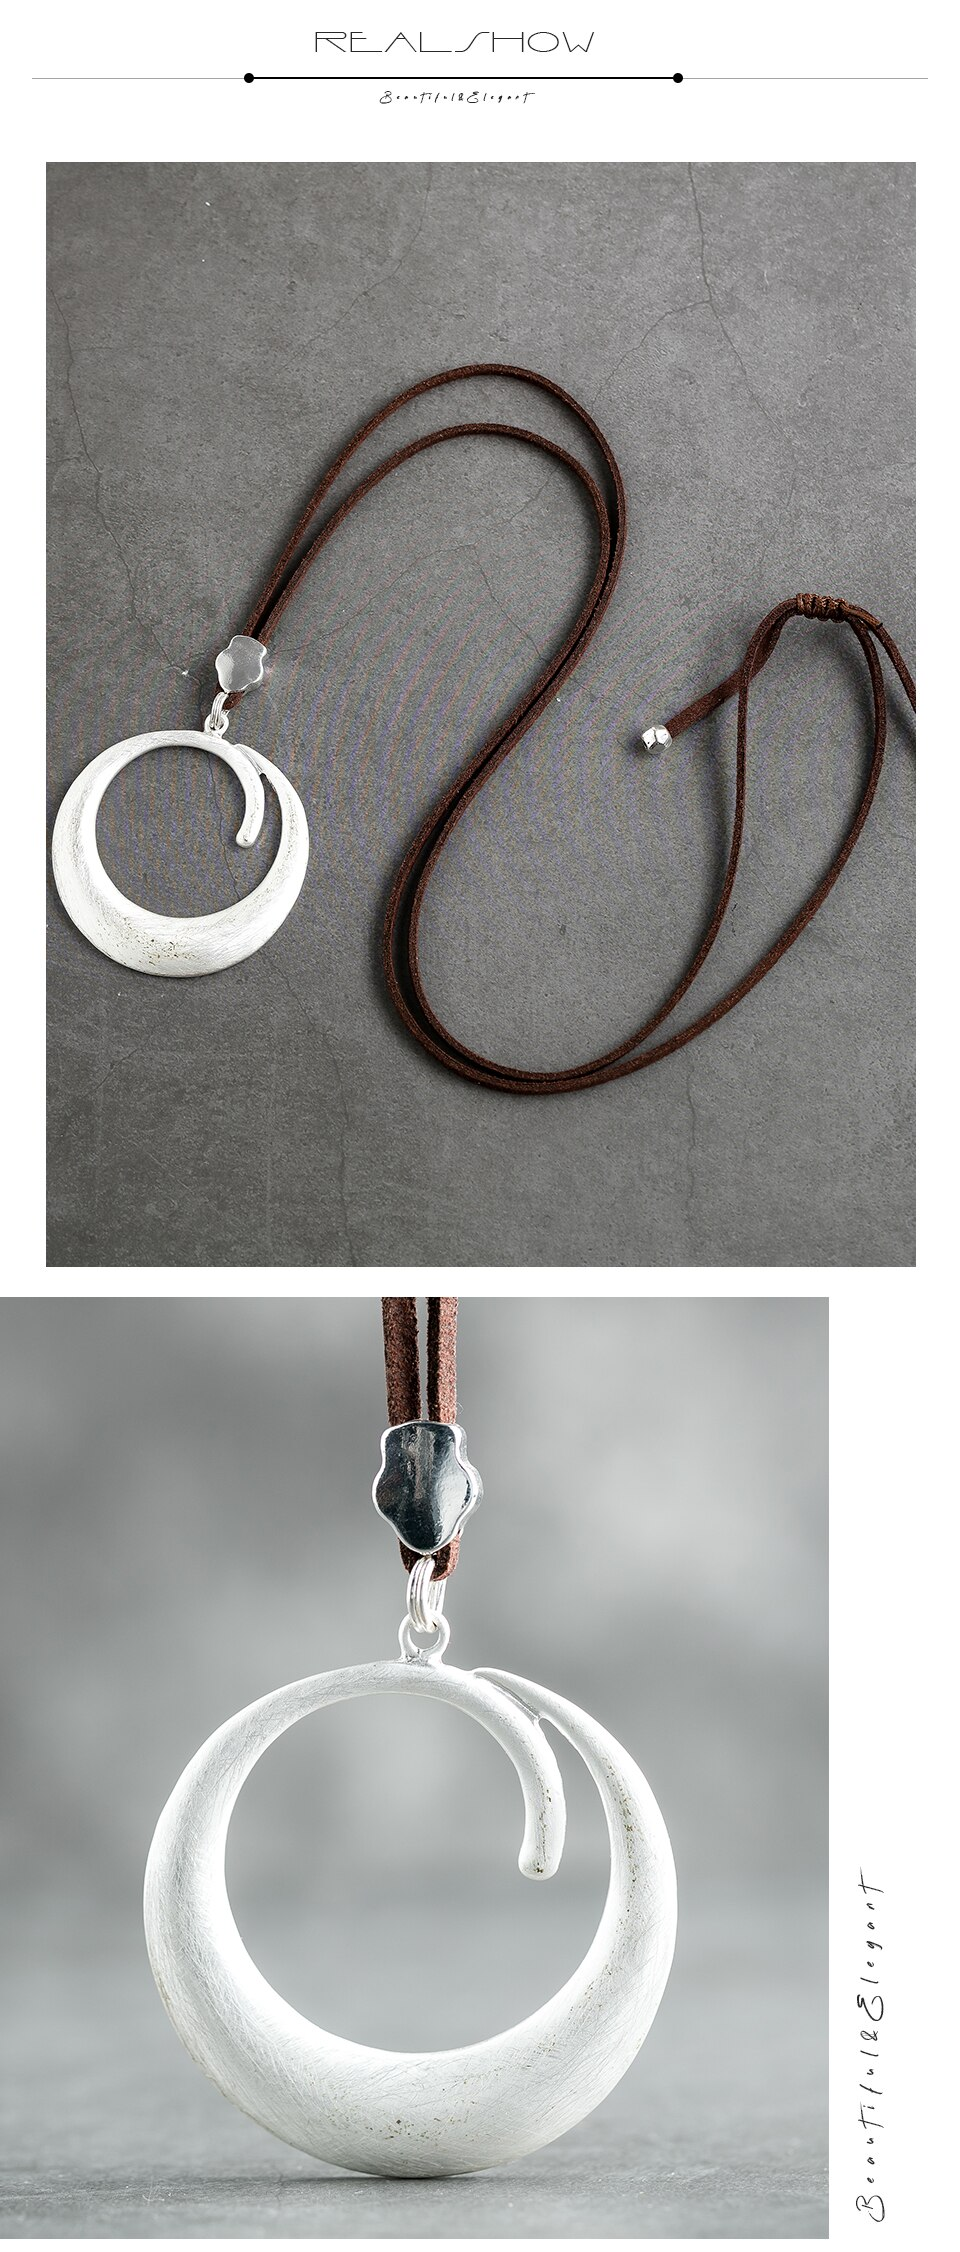 Vintage Jewelry for Women Long Necklace Chokers 2020 Hotsale Pendant Handmade Rope Chain Trendy Female Neck Decoration Fashion